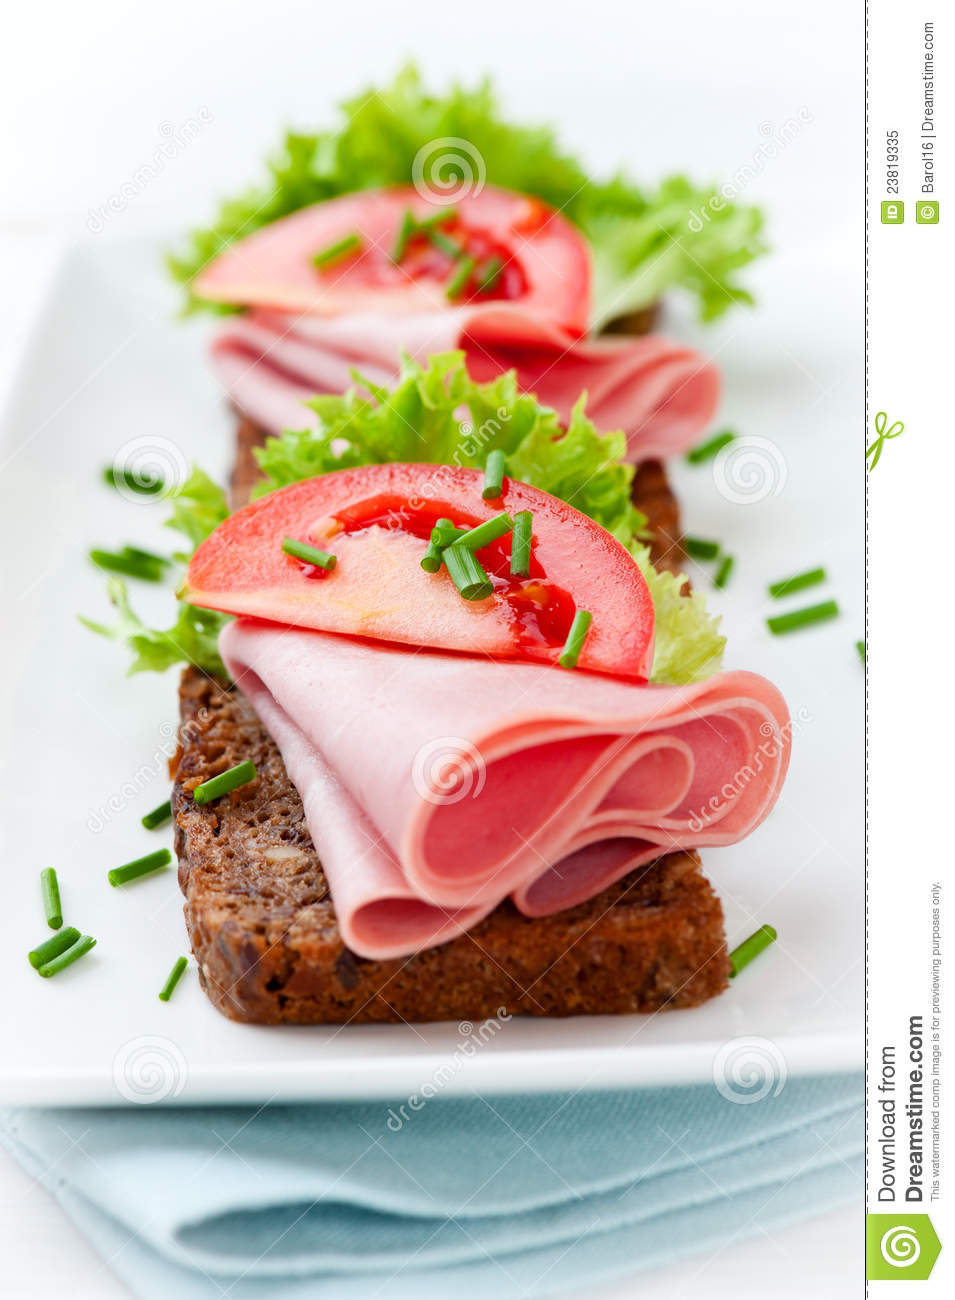 Sandwiches with ham and fresh vegetables